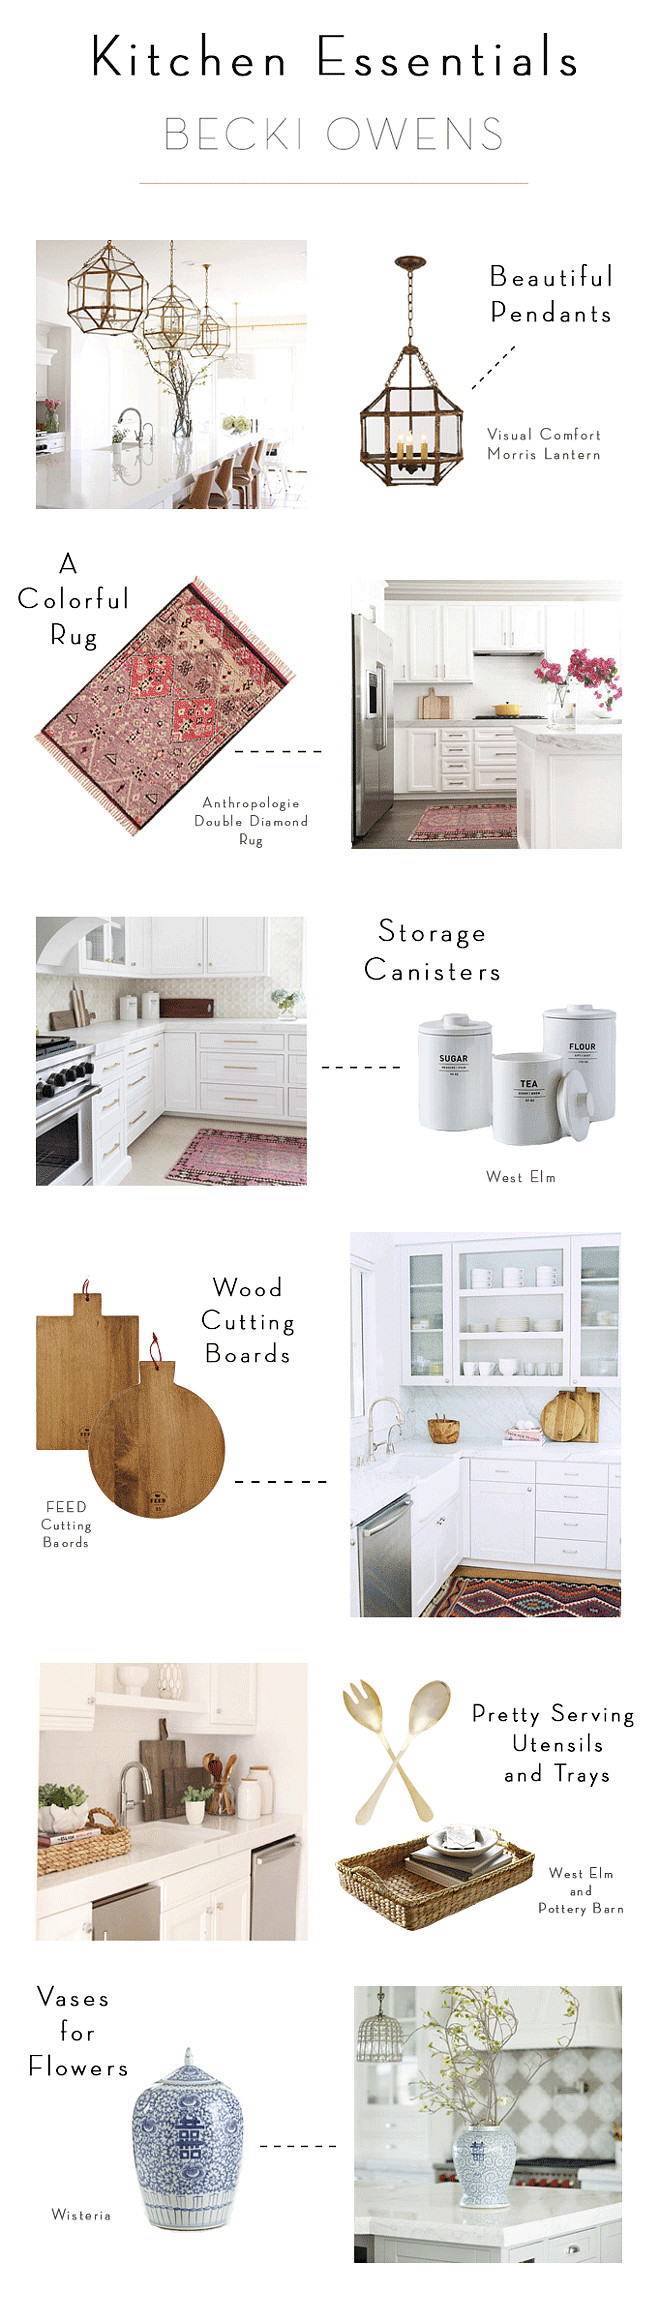 100 interior design ideas home bunch interior design ideas rh homebunch com interior design guidelines pdf interior design guide book